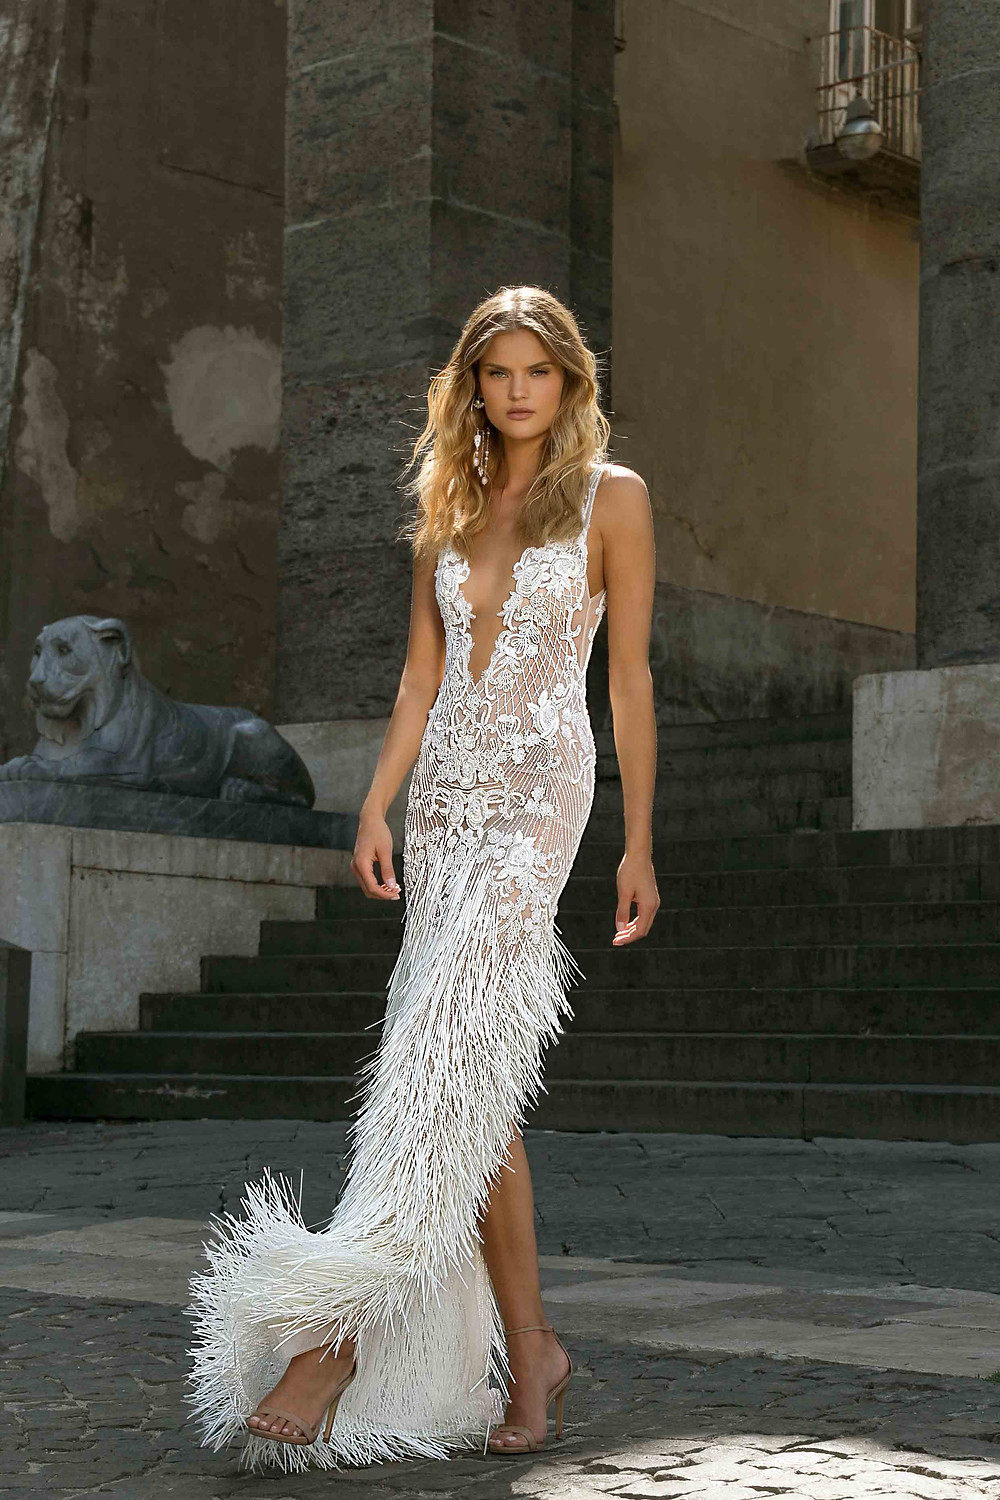 A Berta 2020 sexy wedding dress with a high slit, lace, feathers, thin straps and a low v neckline